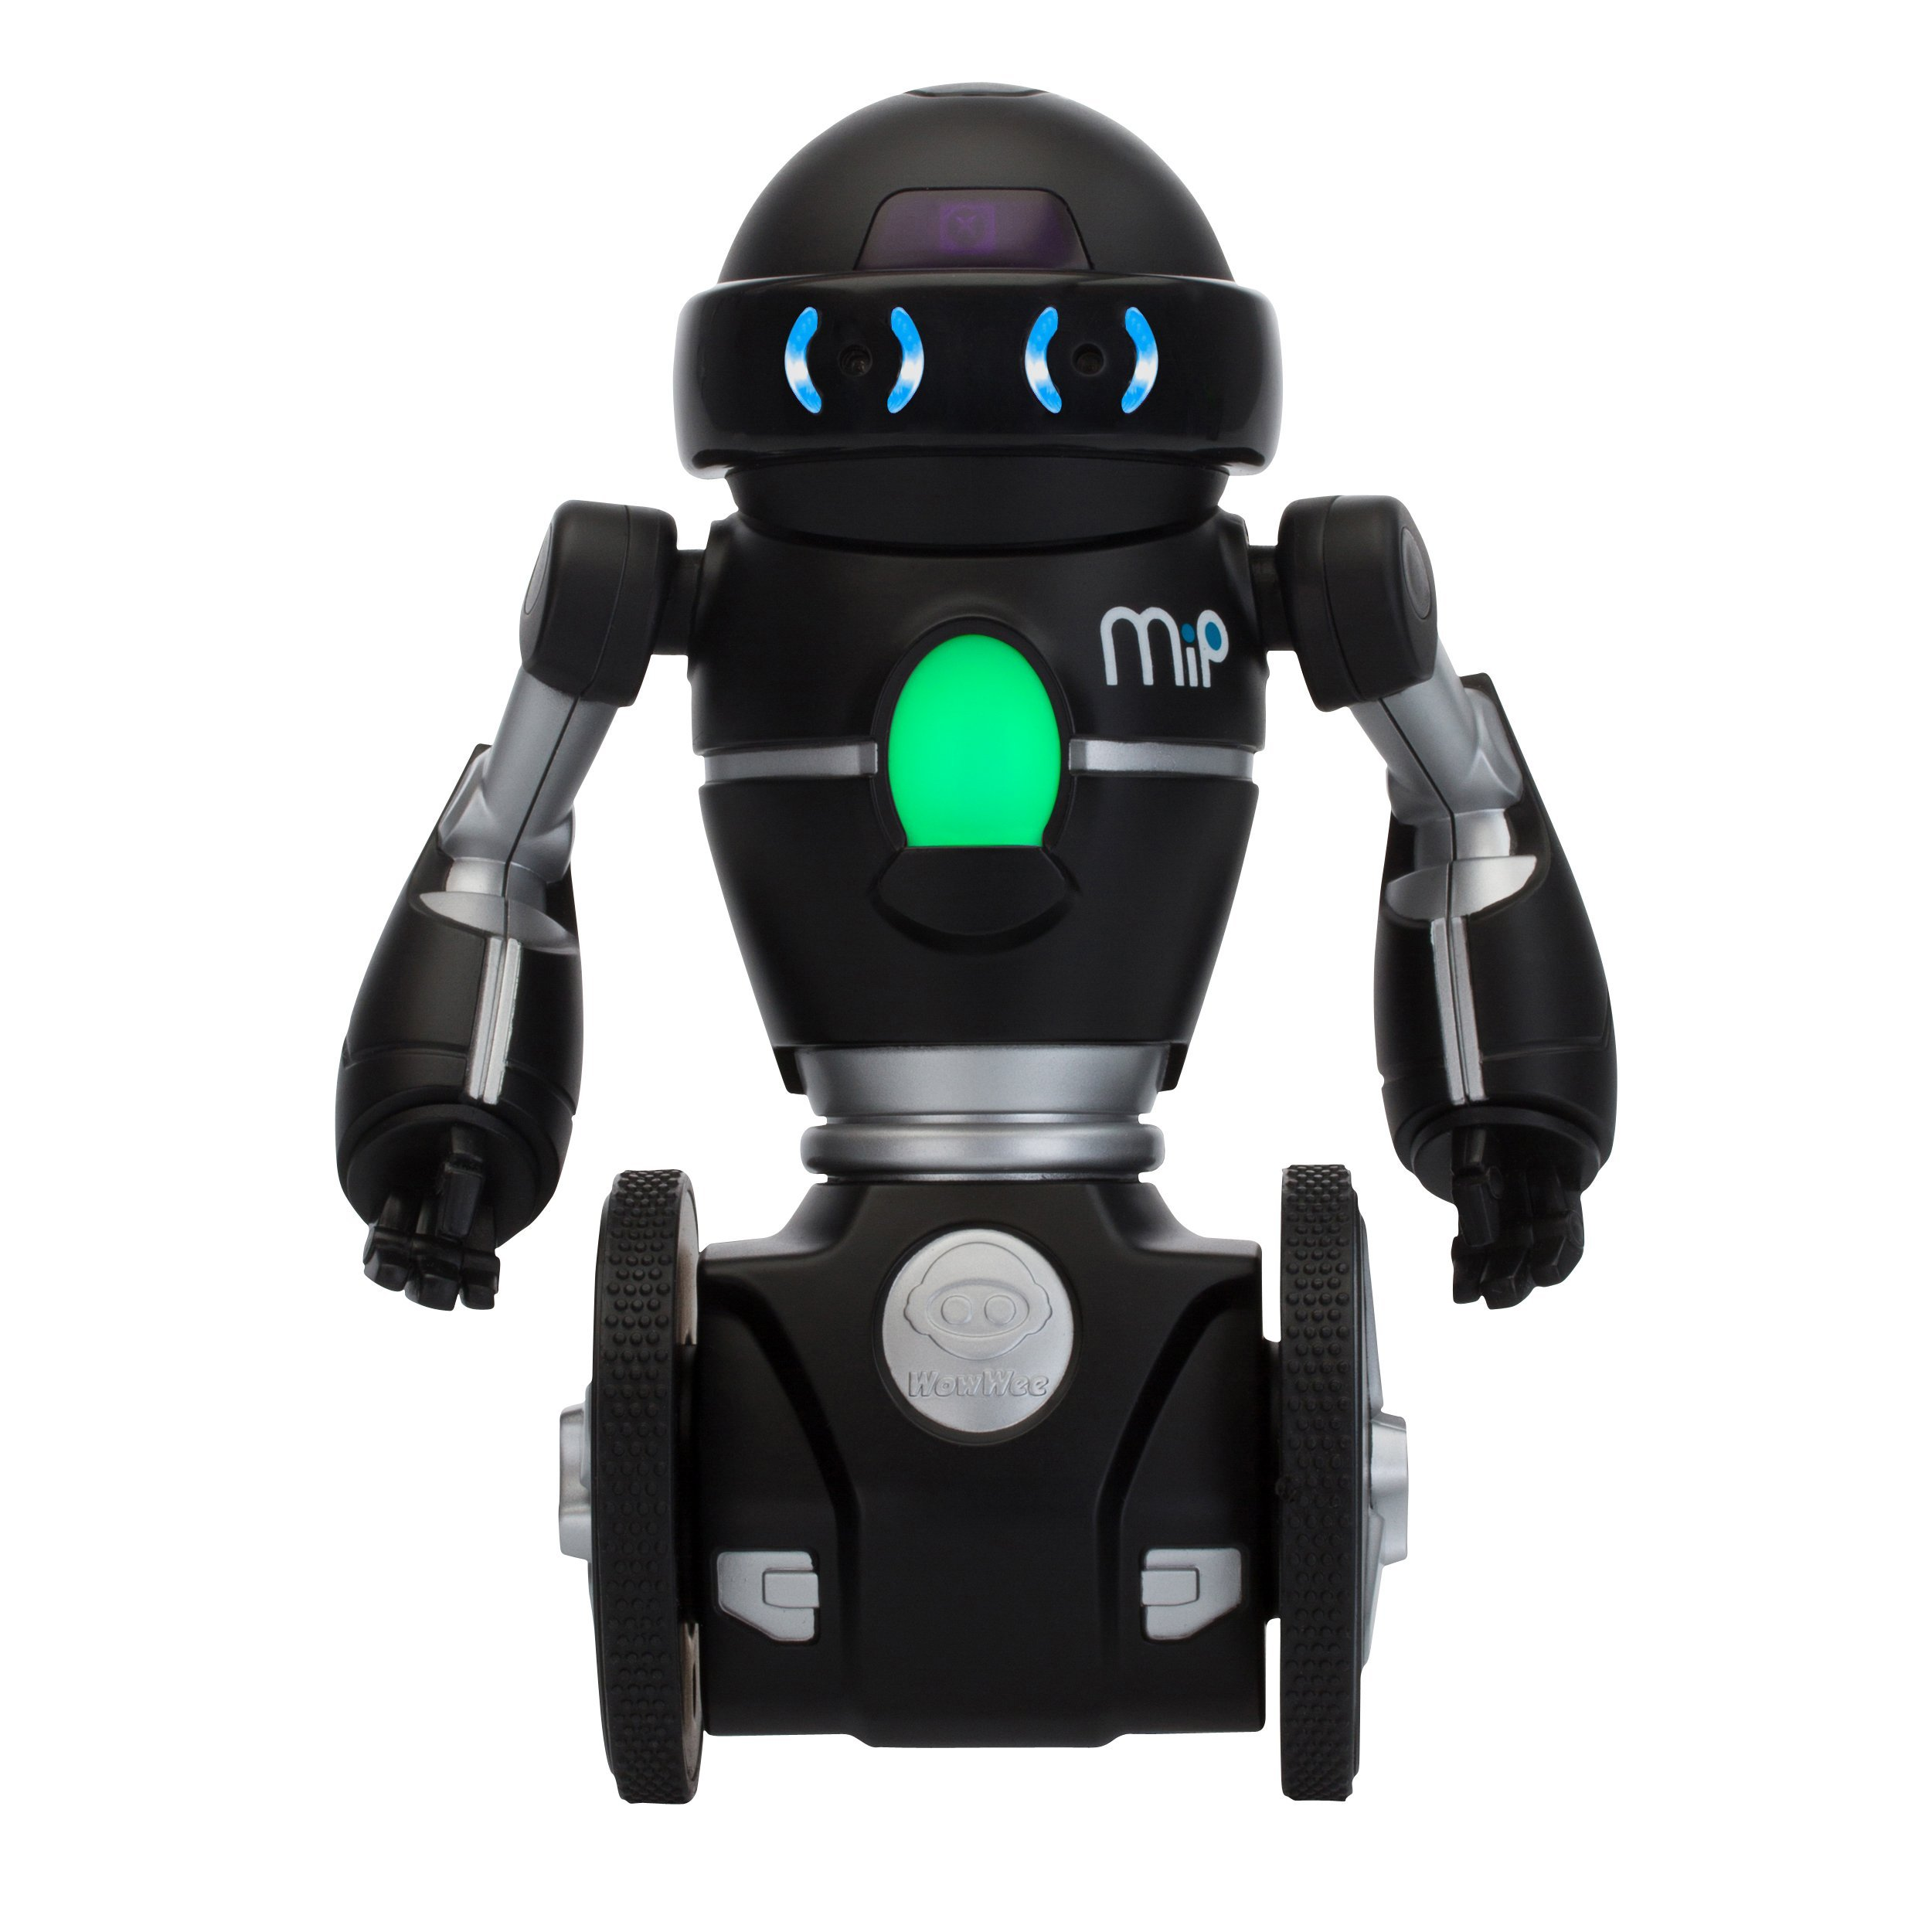 WowWee - MiP The Toy Robot - Black (Frustration Free Packaging) (Renewed)